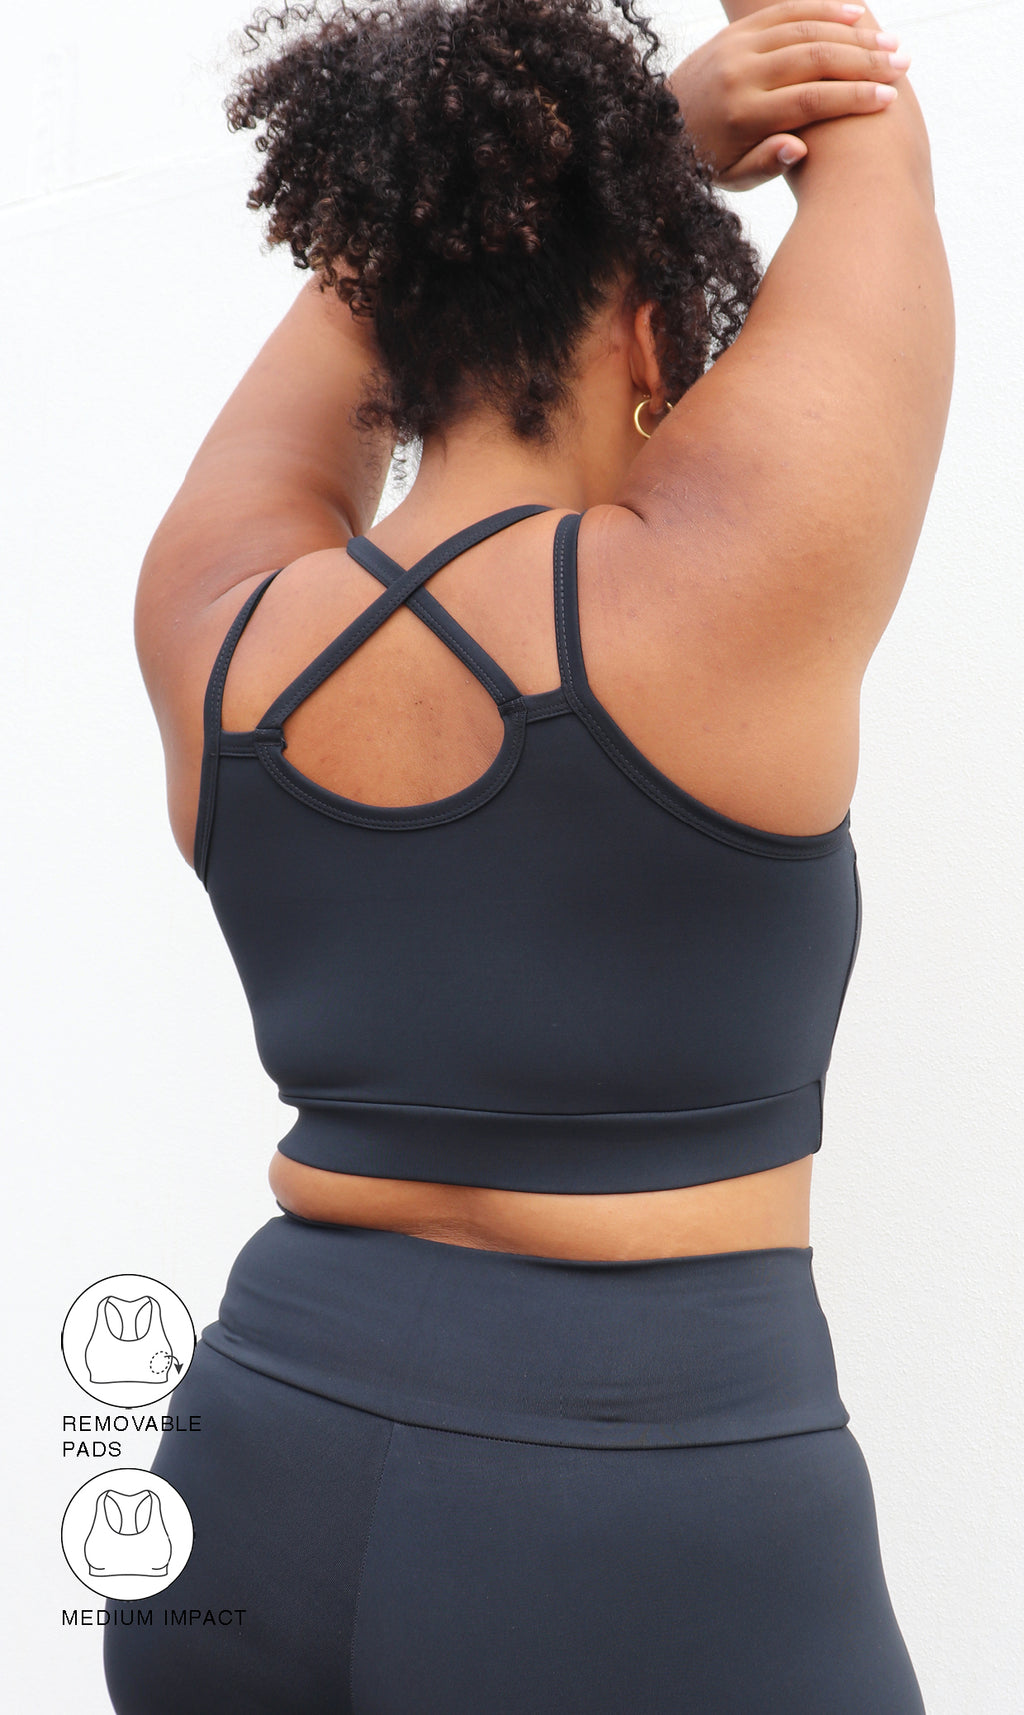 Girl in midnight curvy contouring bra with cross over back strap with hands over head